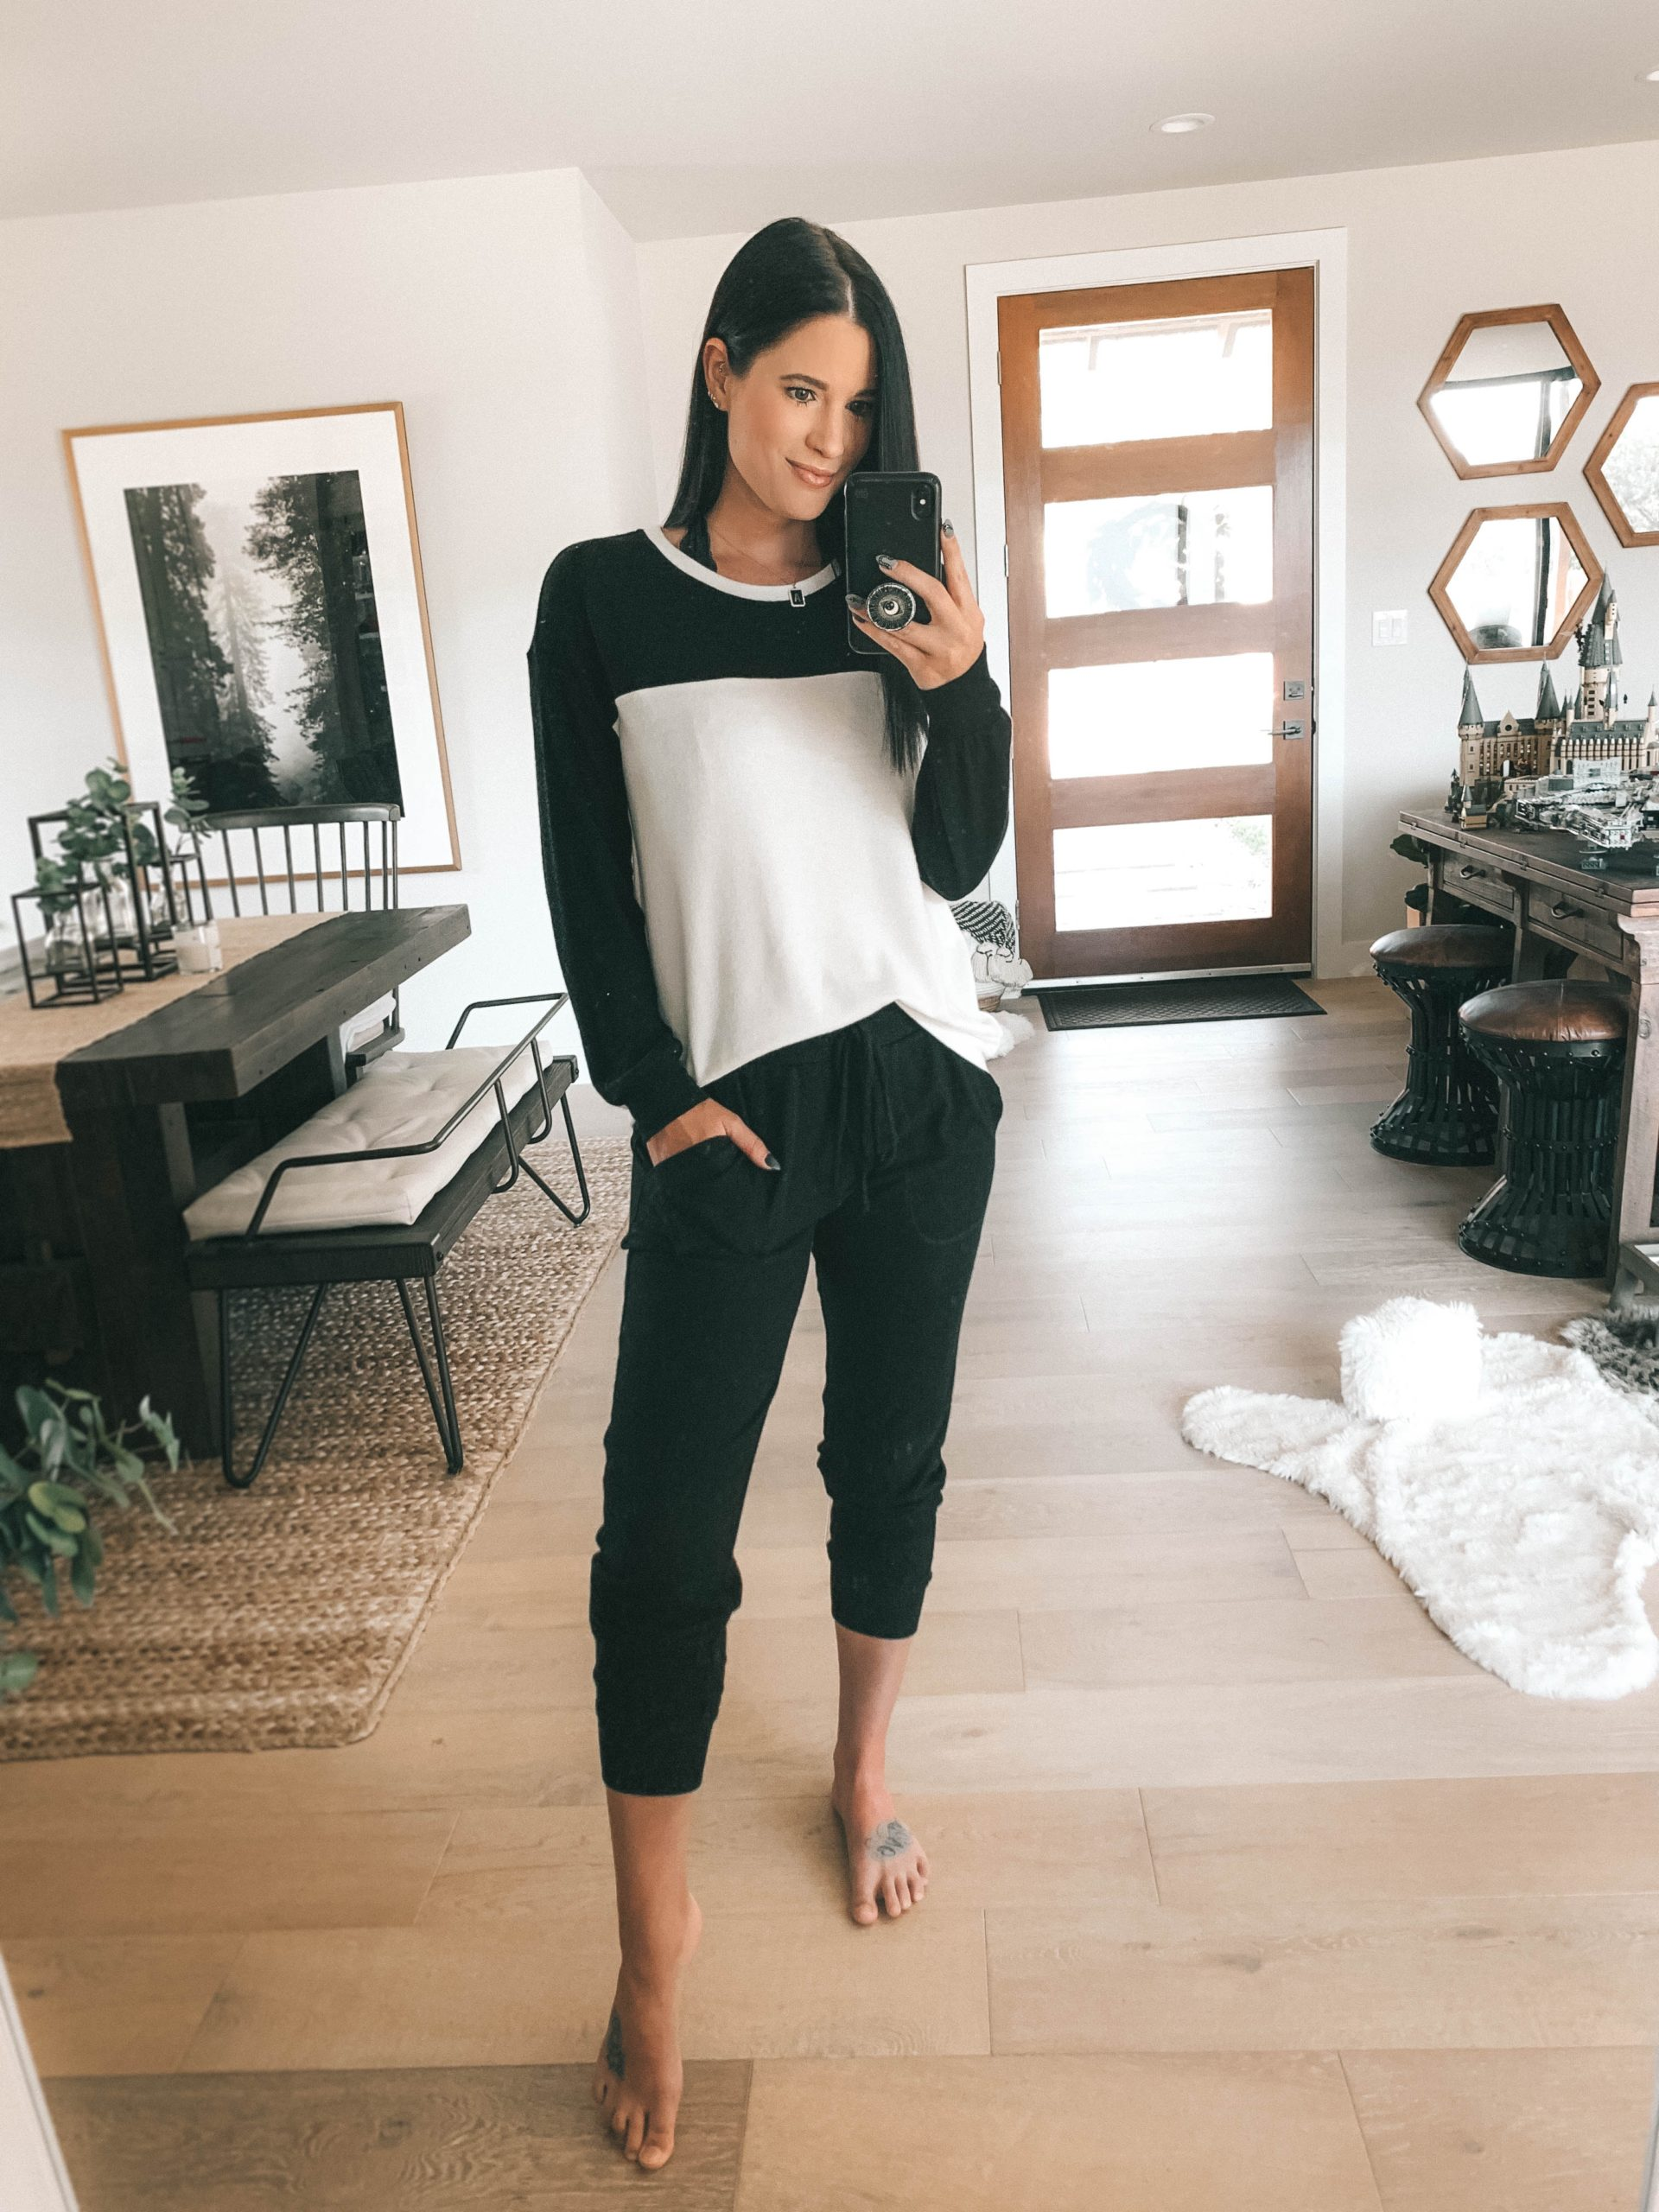 Nordstrom Anniversary Sale by popular Austin fashion blog, Dressed to Kill: image of a woman wearing a Nordstrom Colorblock Cozy Pullover GIBSON and Nordstrom x Living in Yellow Skye Cozy Jogger Pants GIBSON.